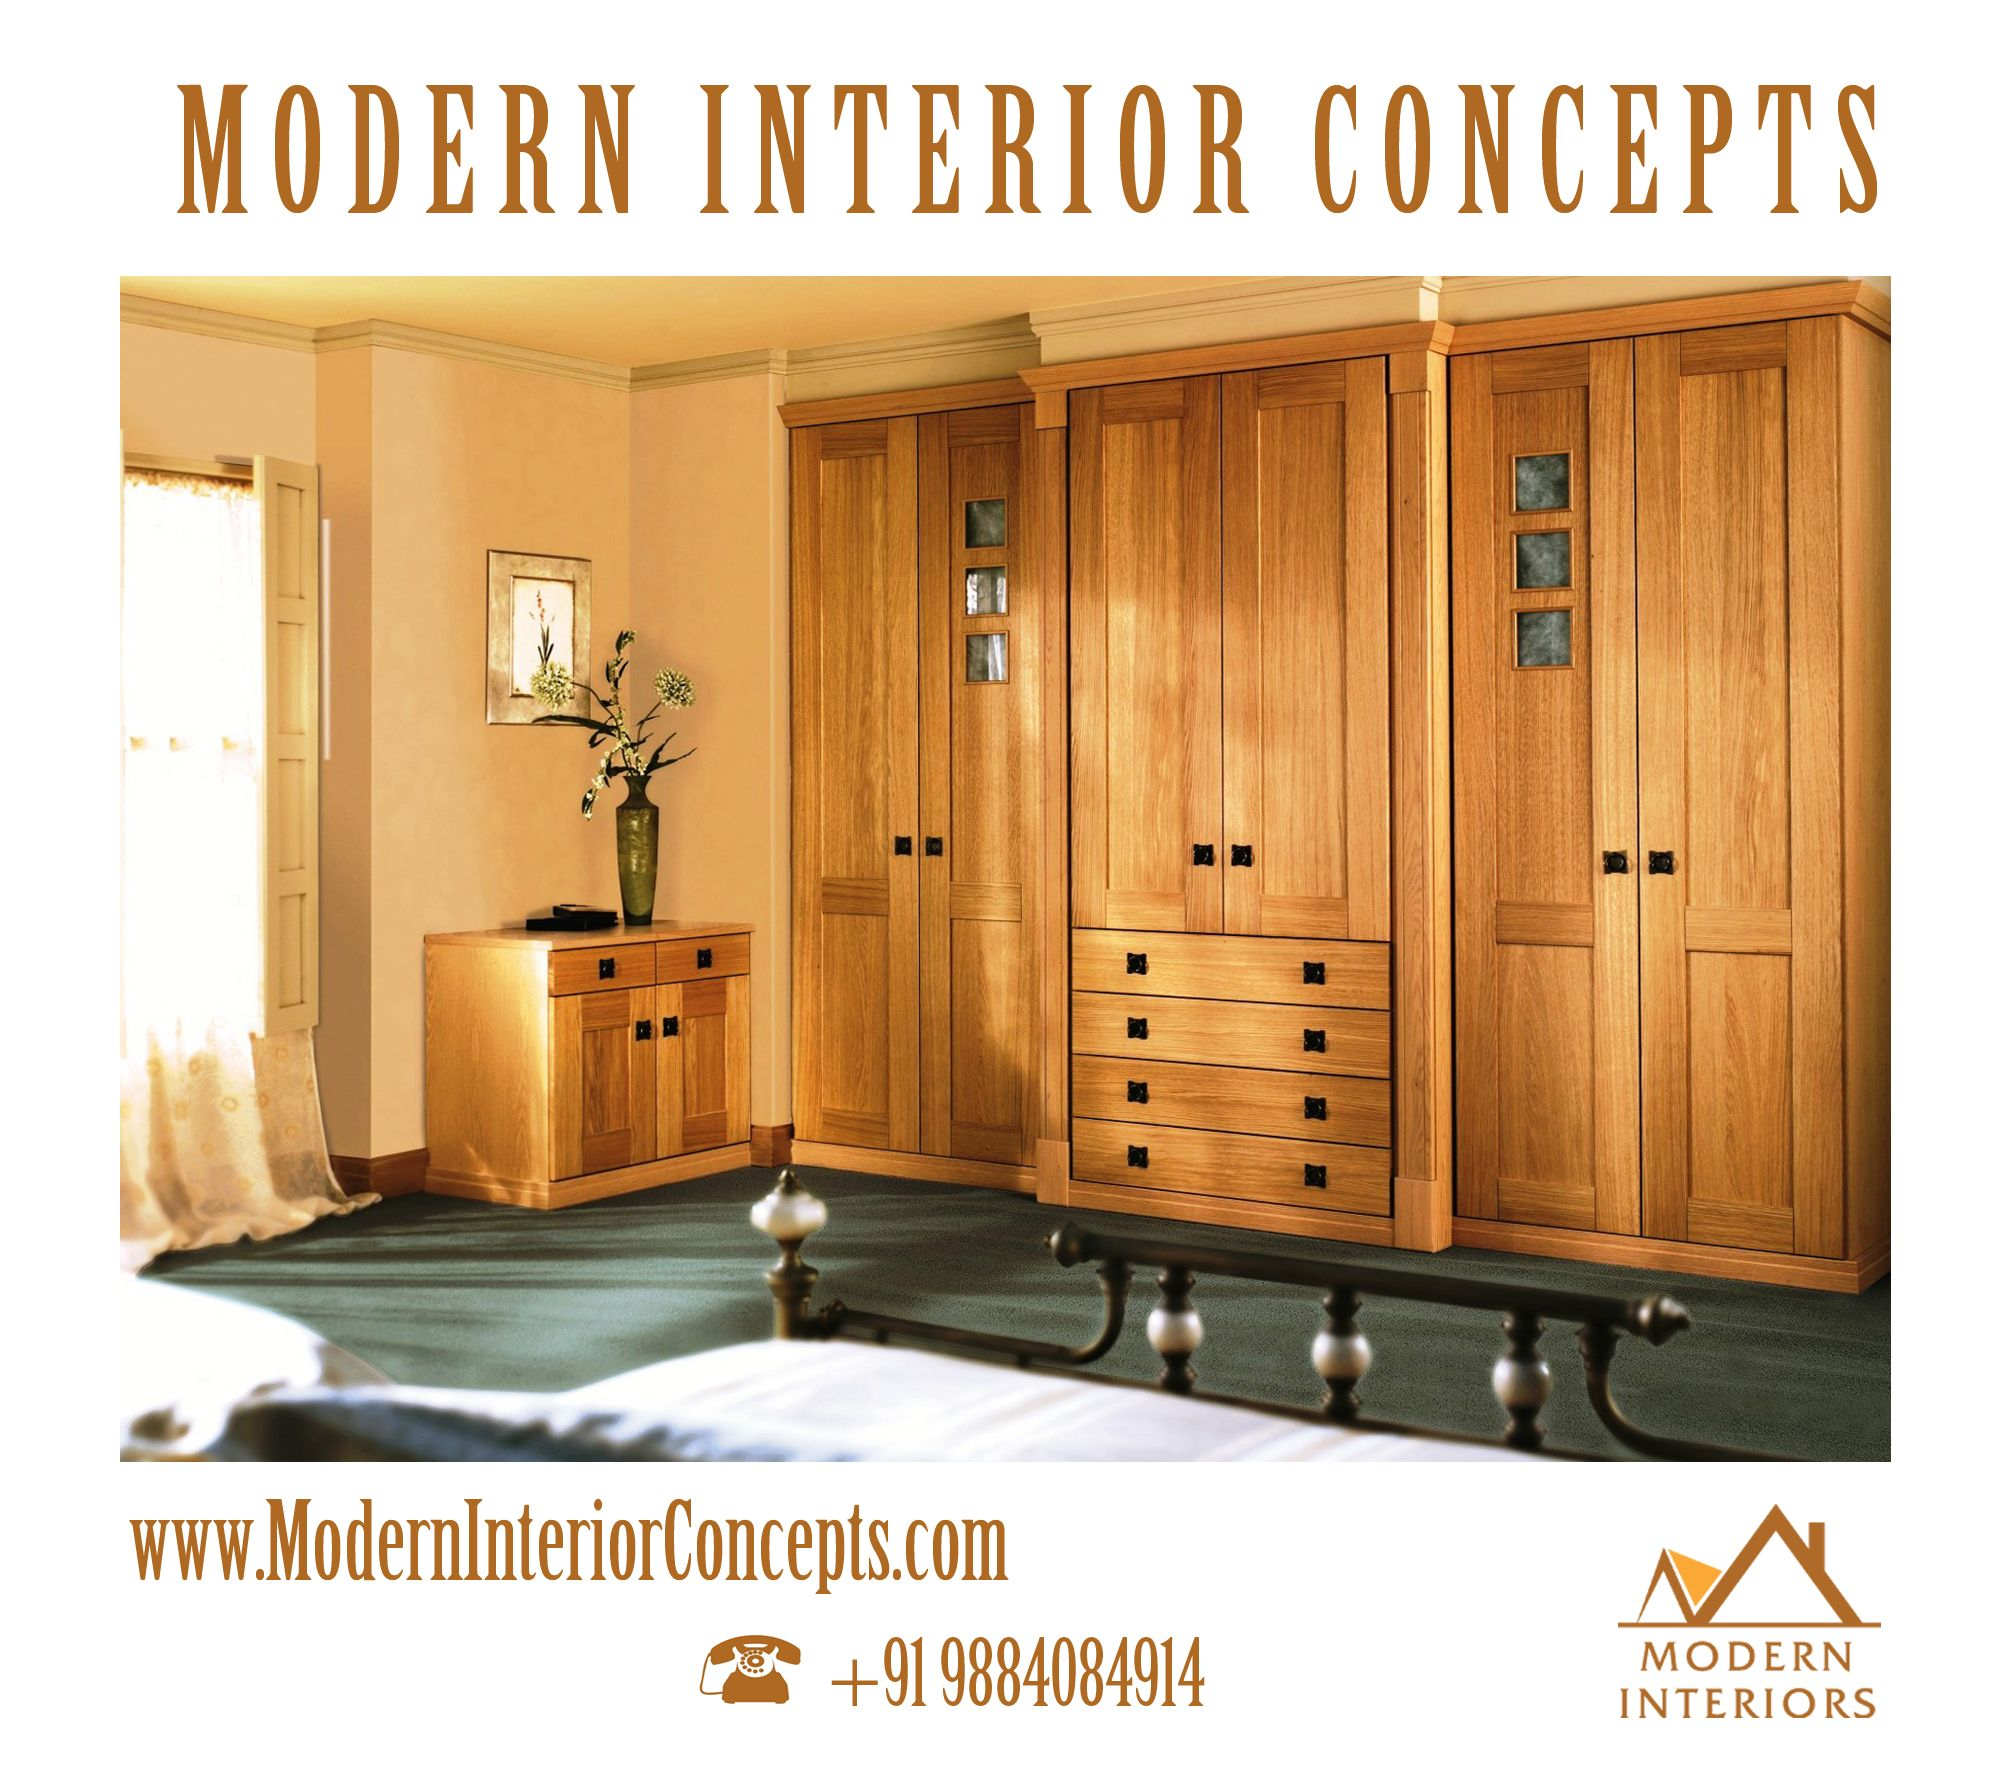 Modern Interior Concepts is the Best Bedroom Wardrobe Interior